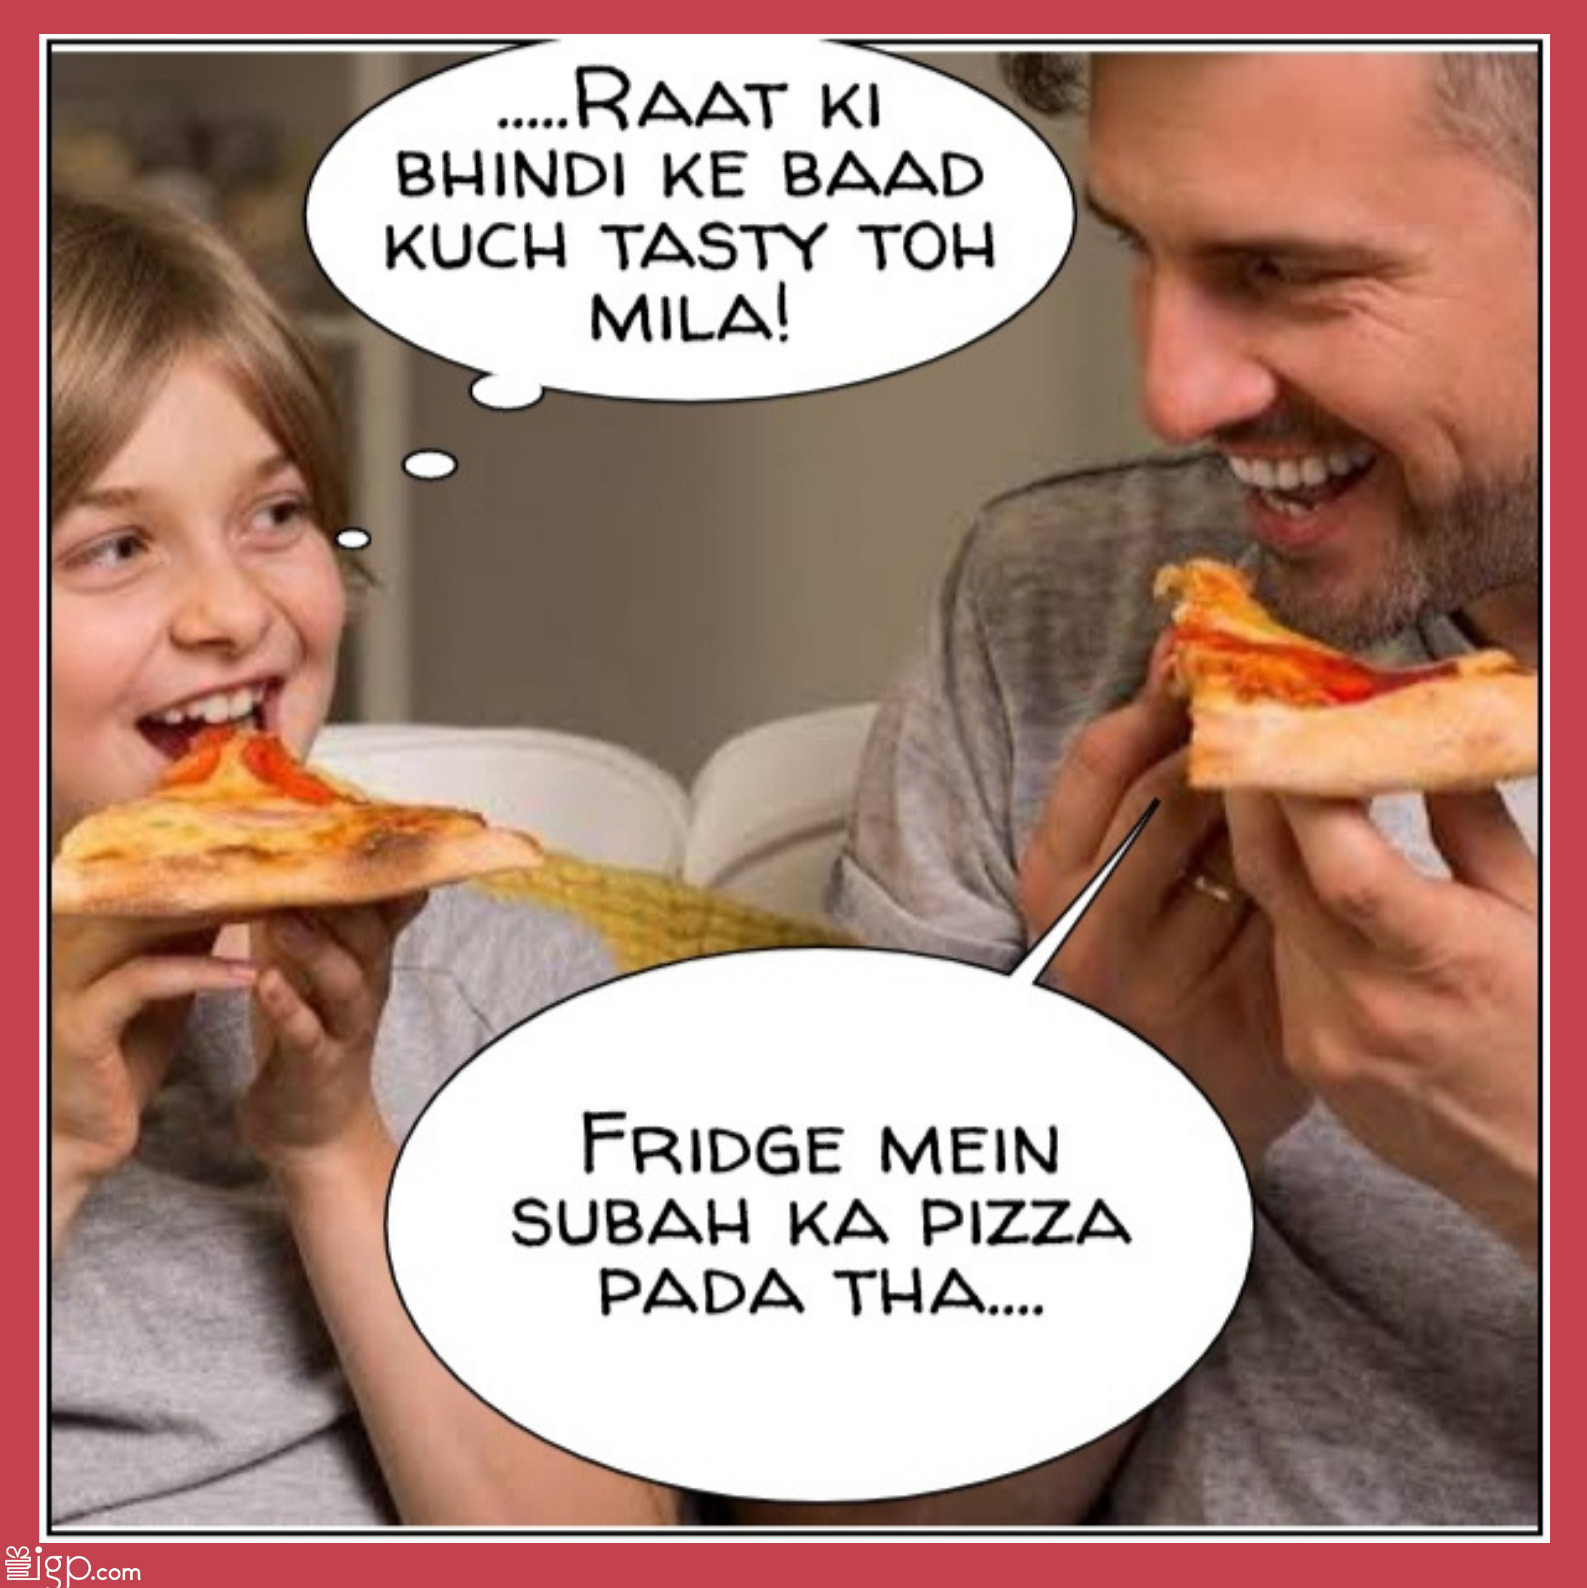 Dad and son eating pizza